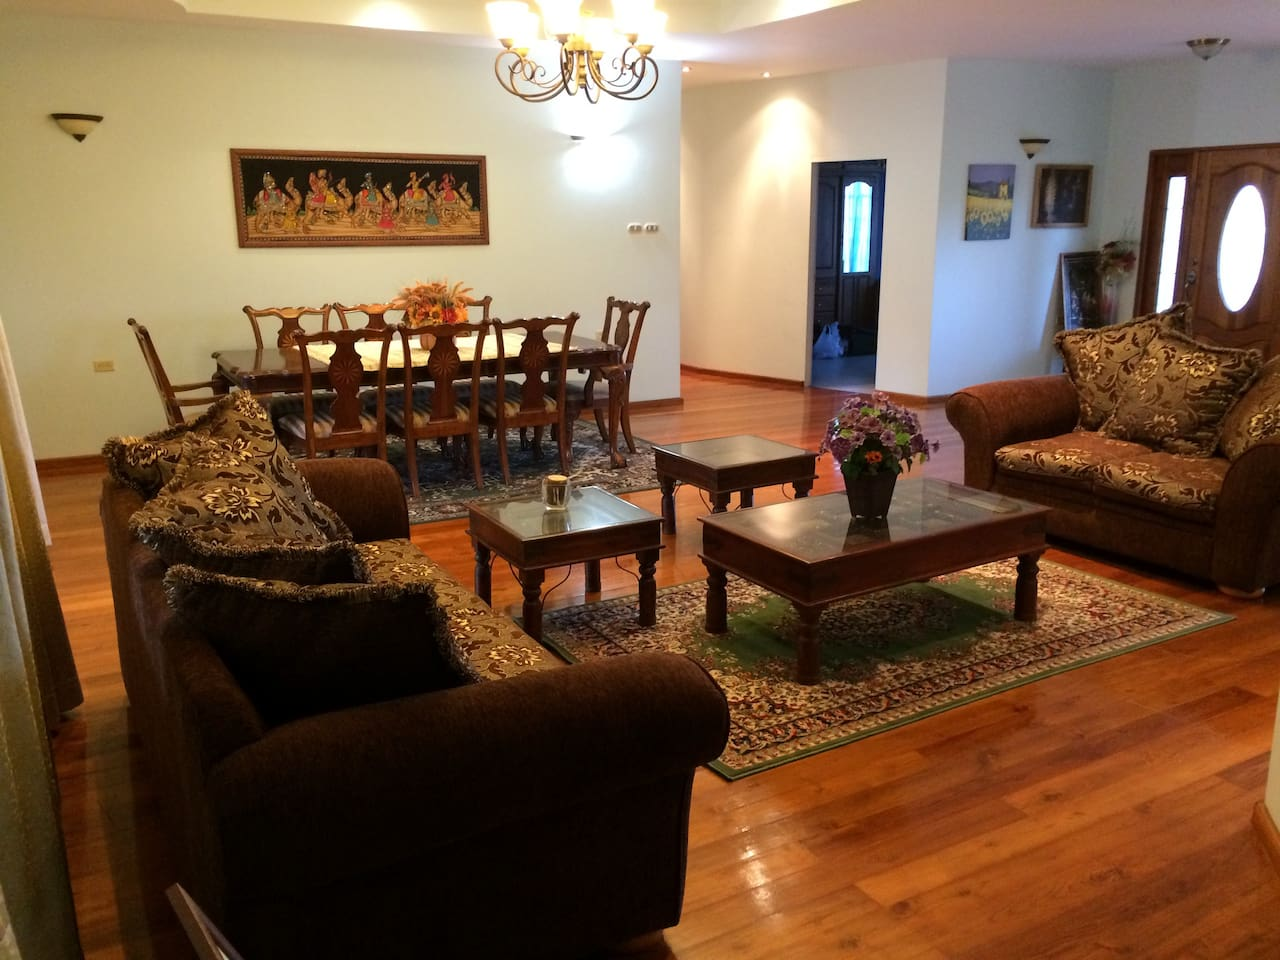 southern comfort - houses for rent in san fernando, trinidad and